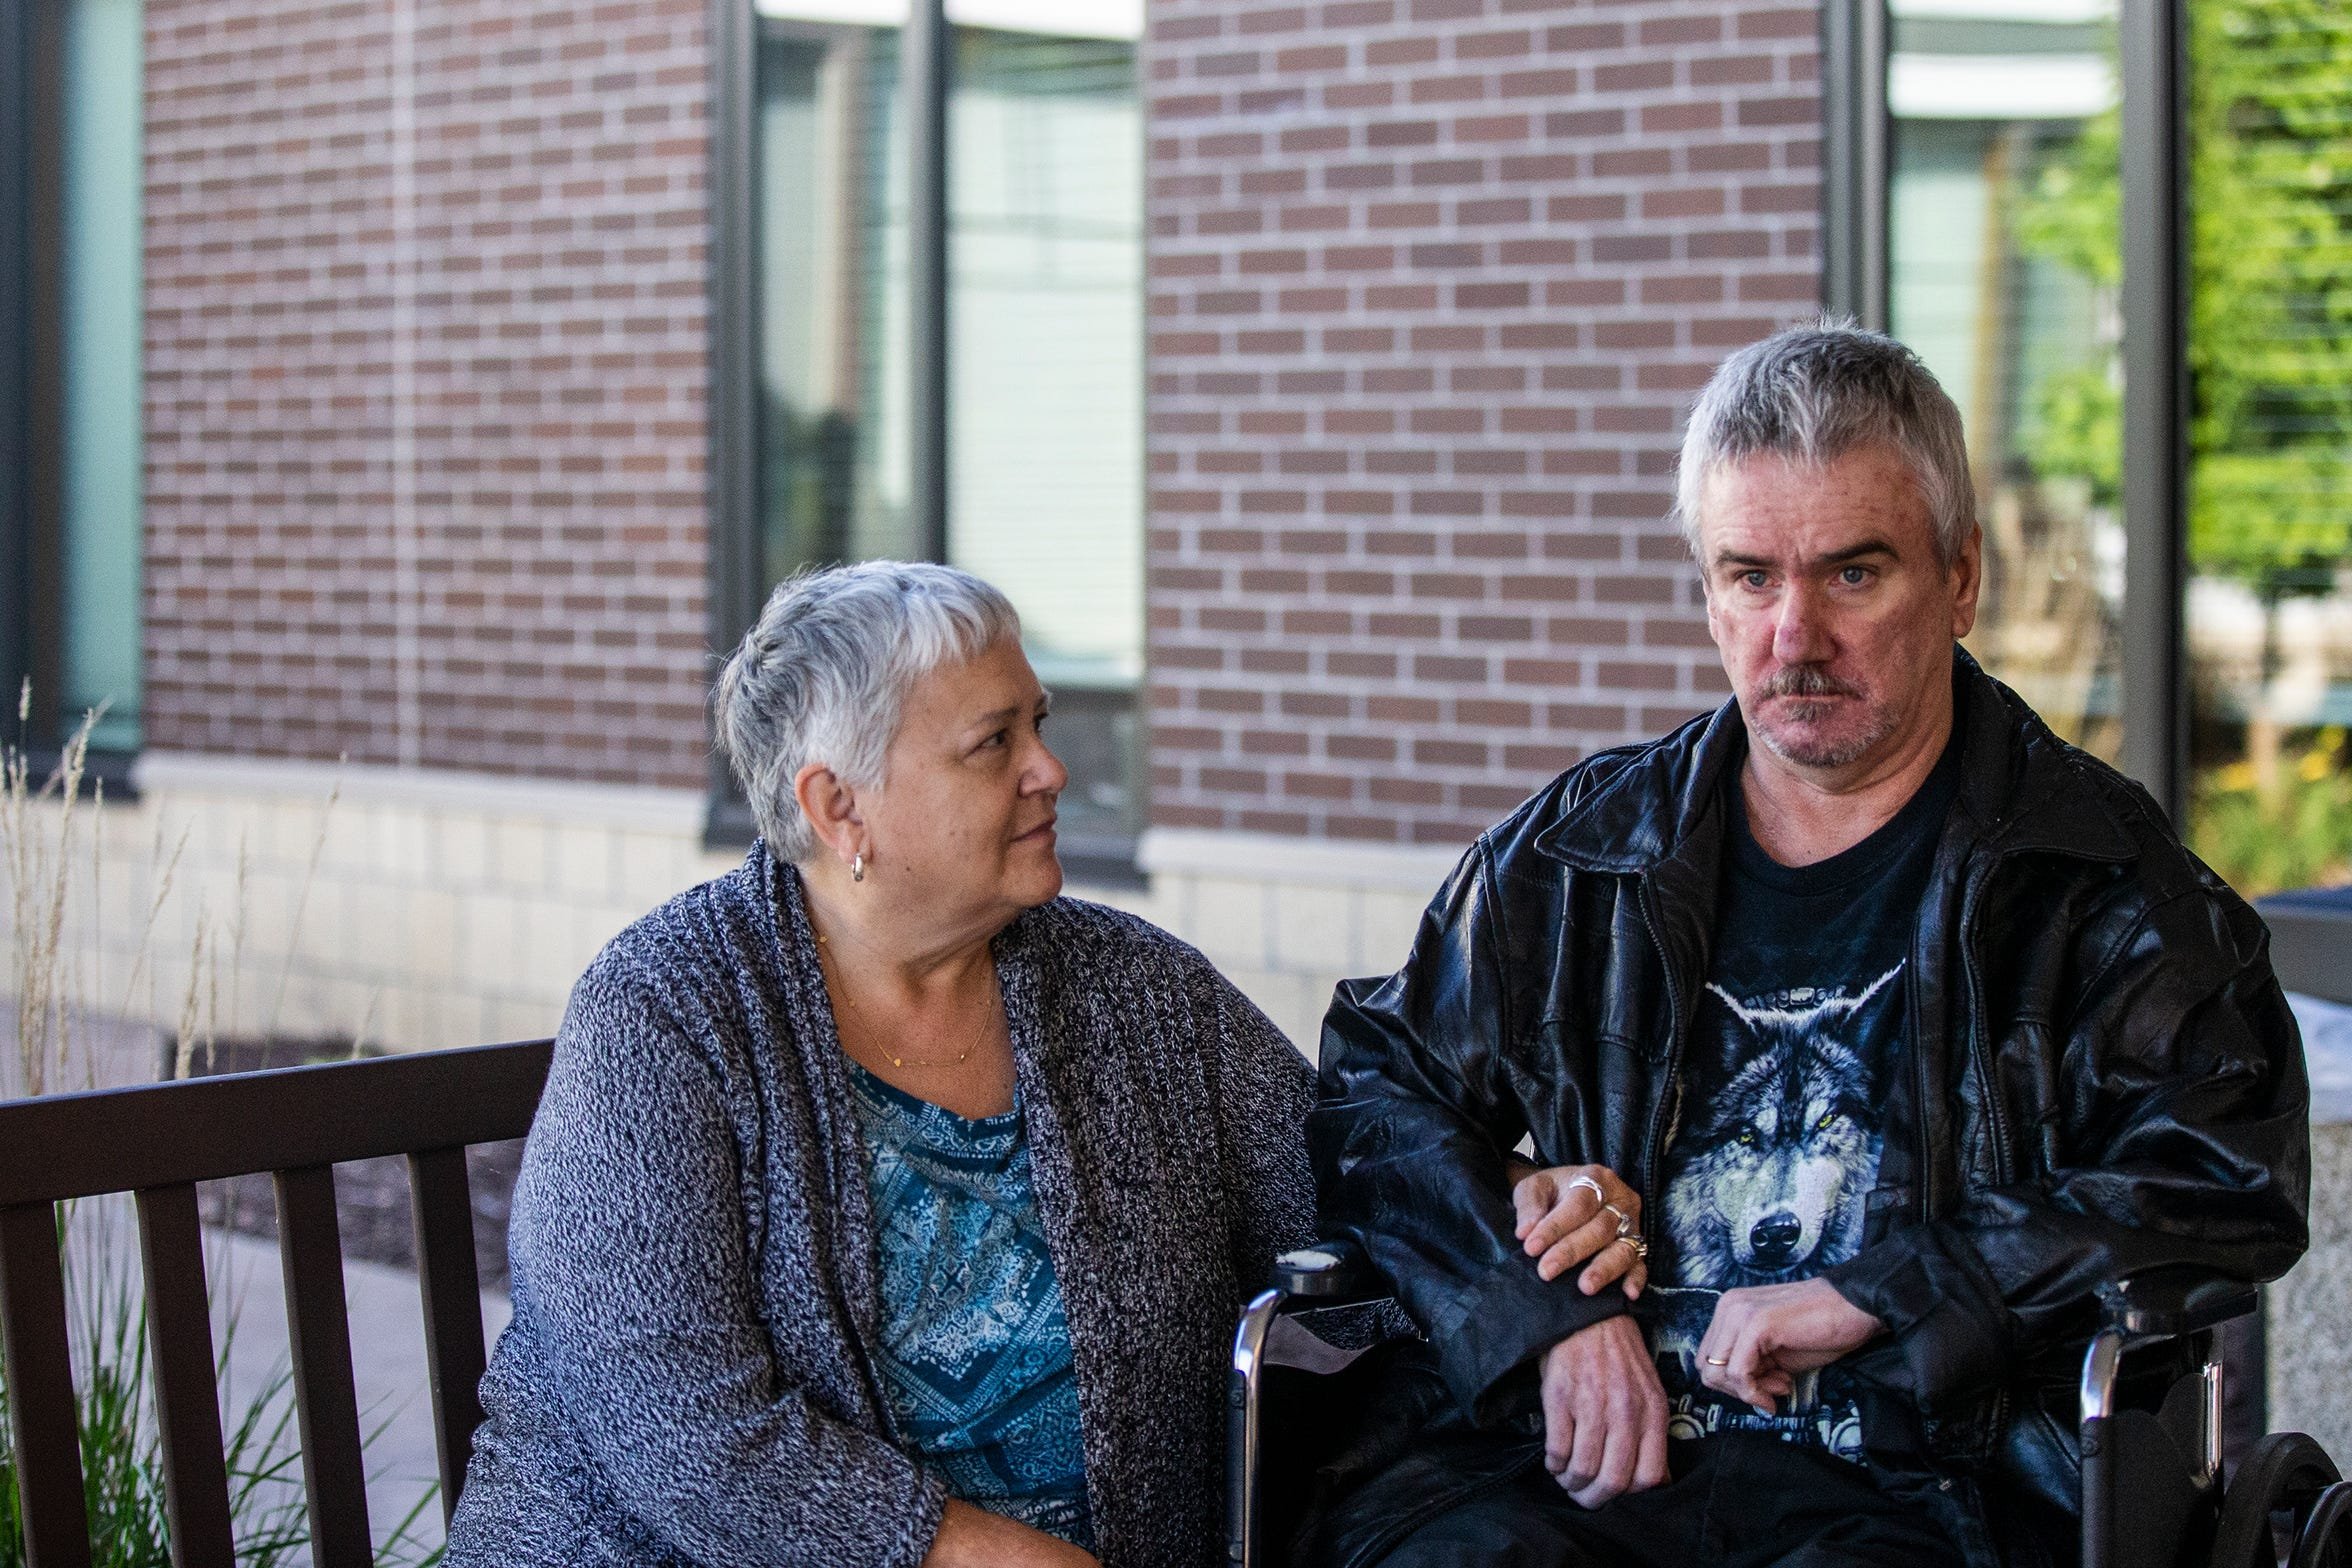 Linnea and Gailen Clausen, of Craig near  Sioux City, sit outside Bethany Life nursing home on Sunday, Sept. 23, 2018 in Story City. Due to a shortage of care facilities accepting patients like Gailen, Bethany Life, which is three hours from their home in Craig, is the closest option for them.